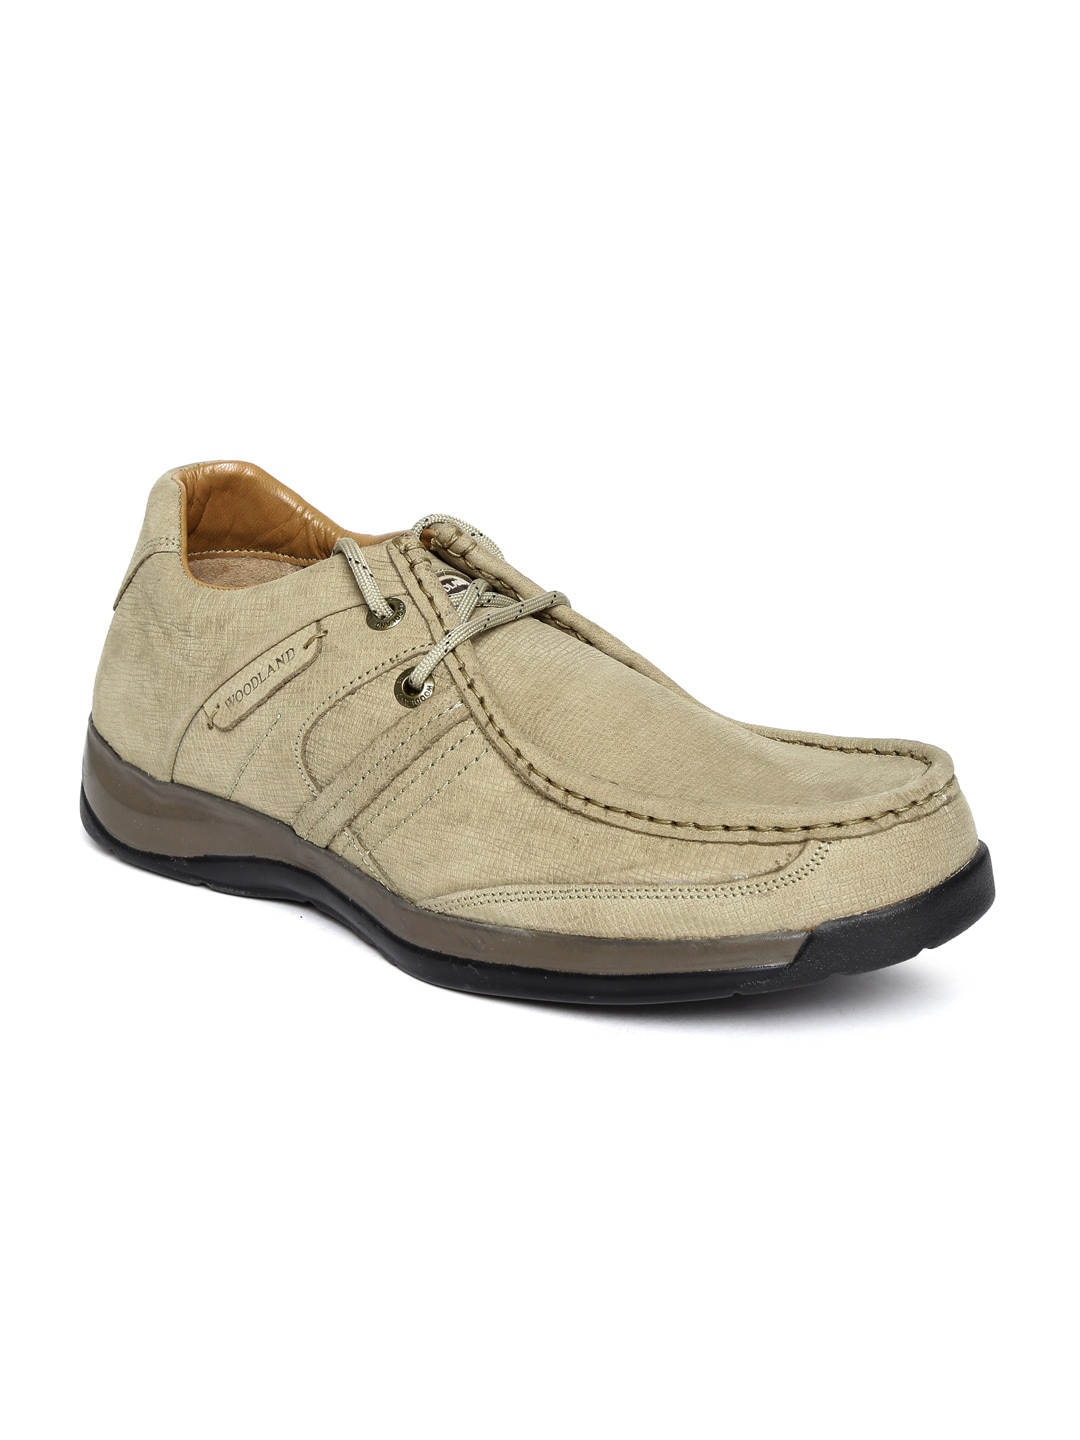 bdfe8ed4d1993 Woodland Footwear - Buy Woodland Footwears Online in India